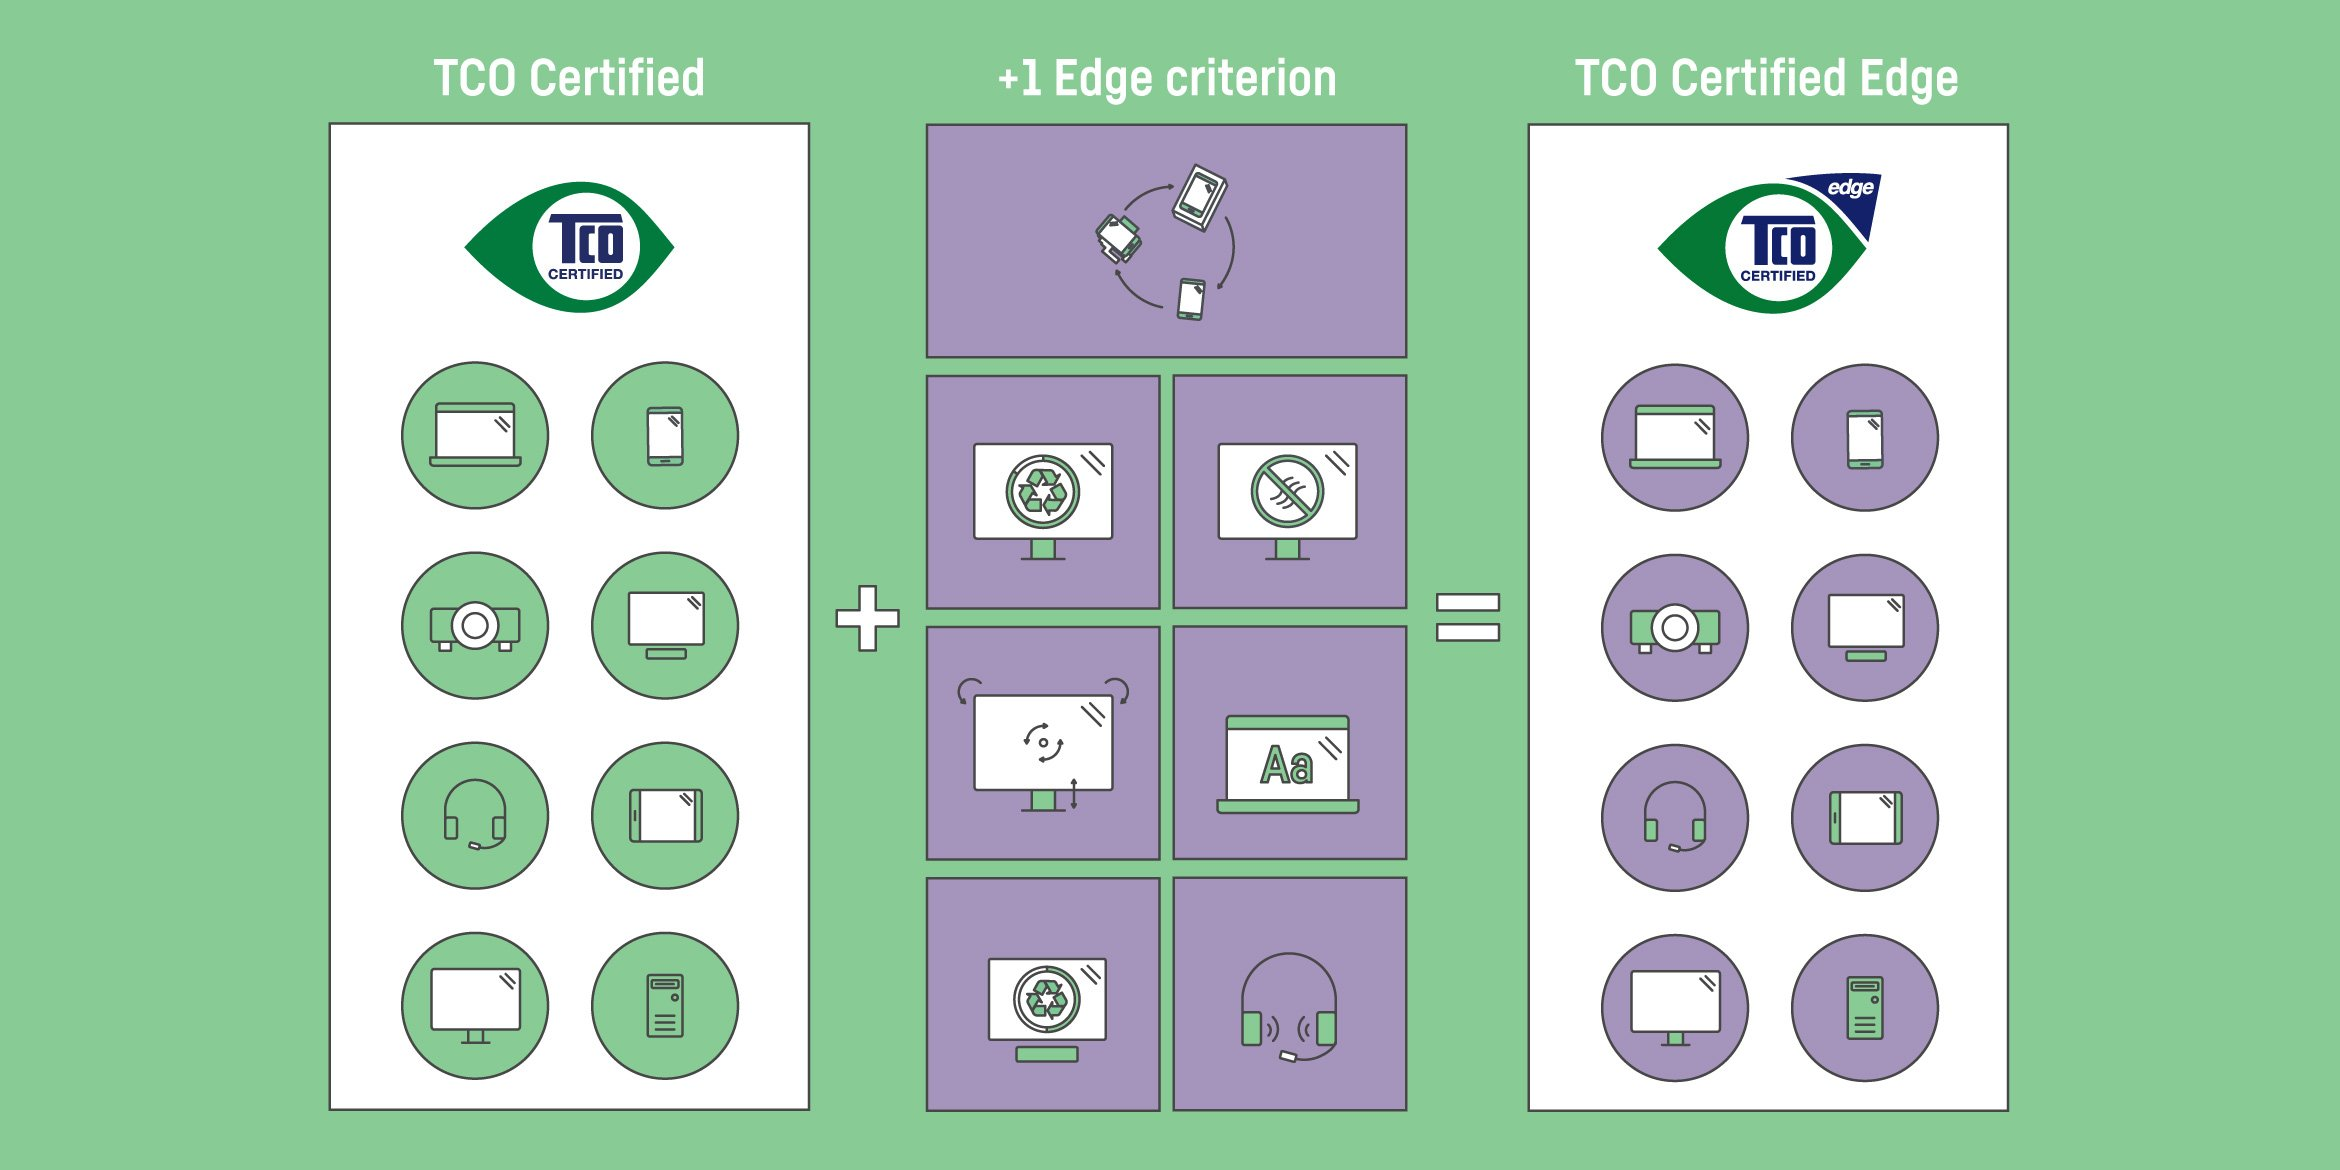 TCO Certified Edge — an additional step toward more sustainable IT products